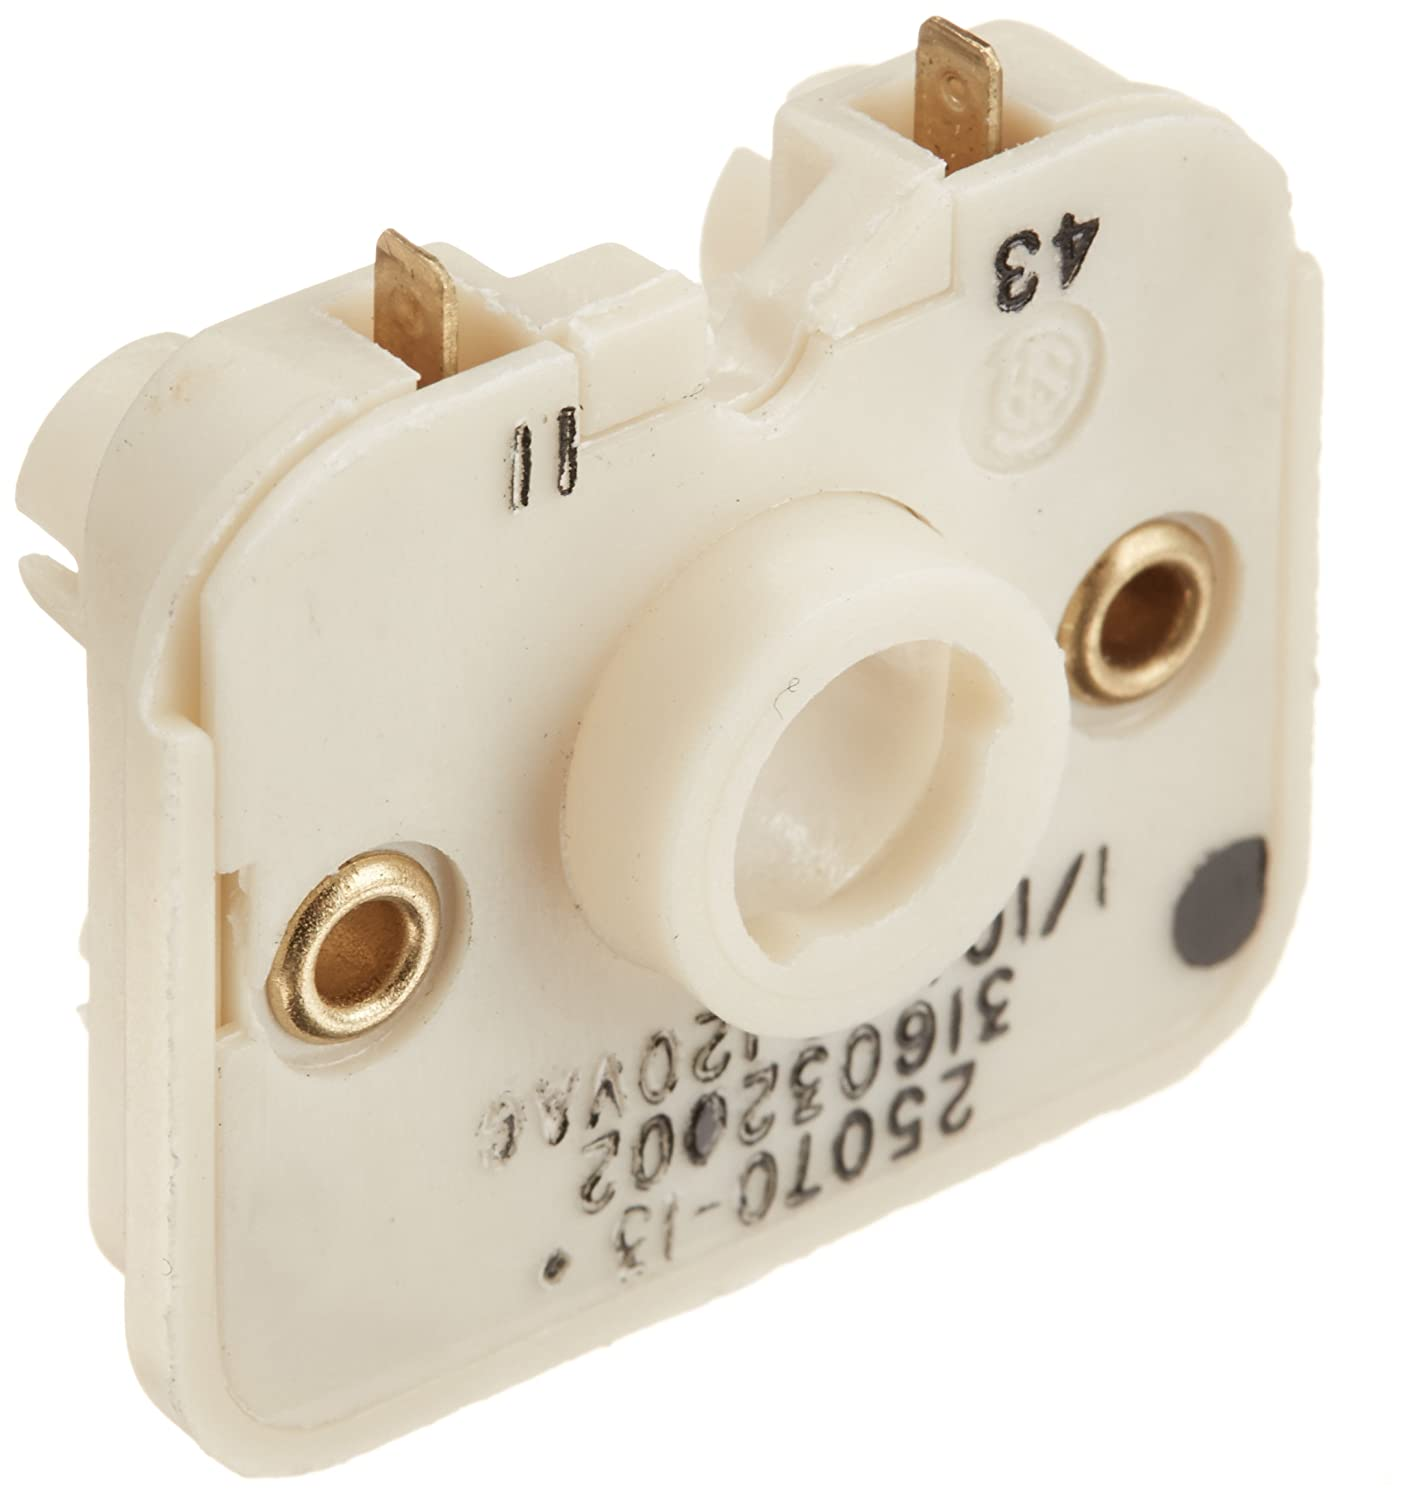 Frigidaire 316032002 Spark Ignition Switch Range/Stove/Oven